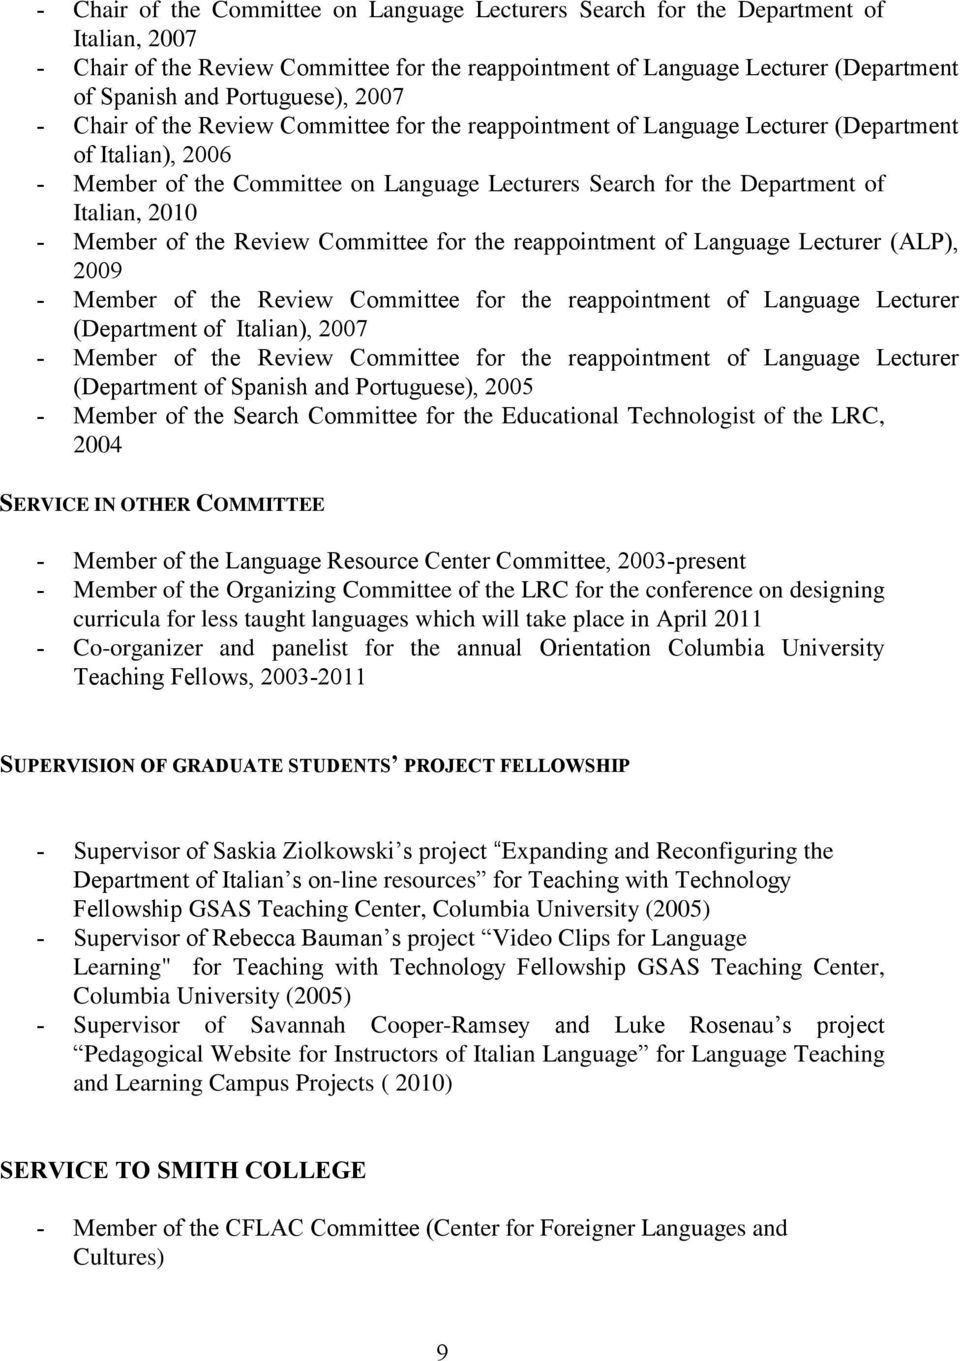 Italian, 2010 - Member of the Review Committee for the reappointment of Language Lecturer (ALP), 2009 - Member of the Review Committee for the reappointment of Language Lecturer (Department of